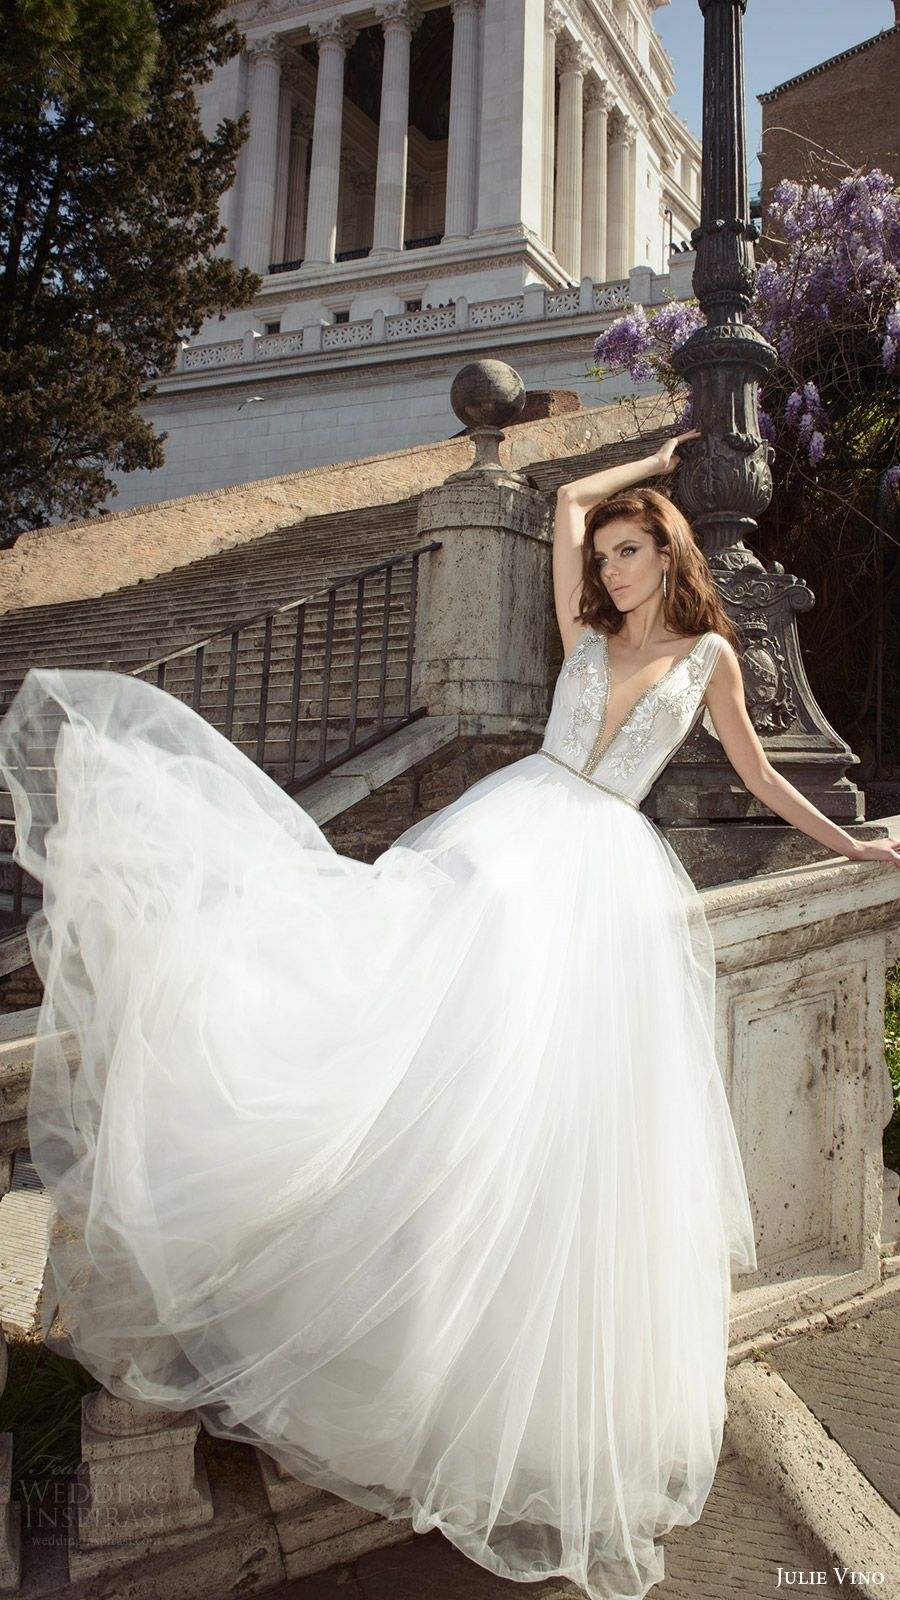 Julie vino bridal spring wedding dresses u roma bridal